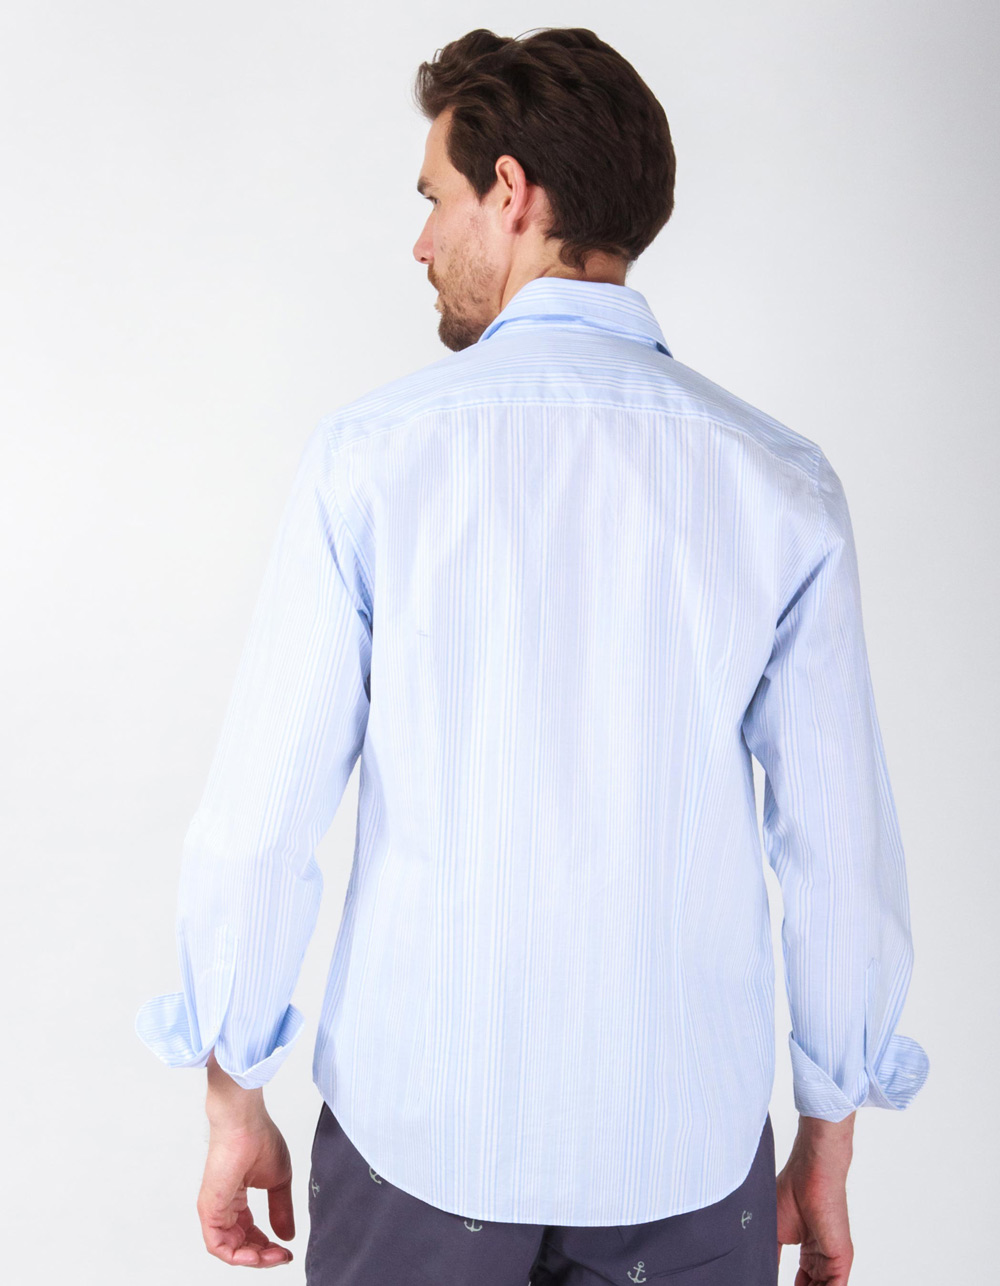 Blue and white striped shirt - Backside